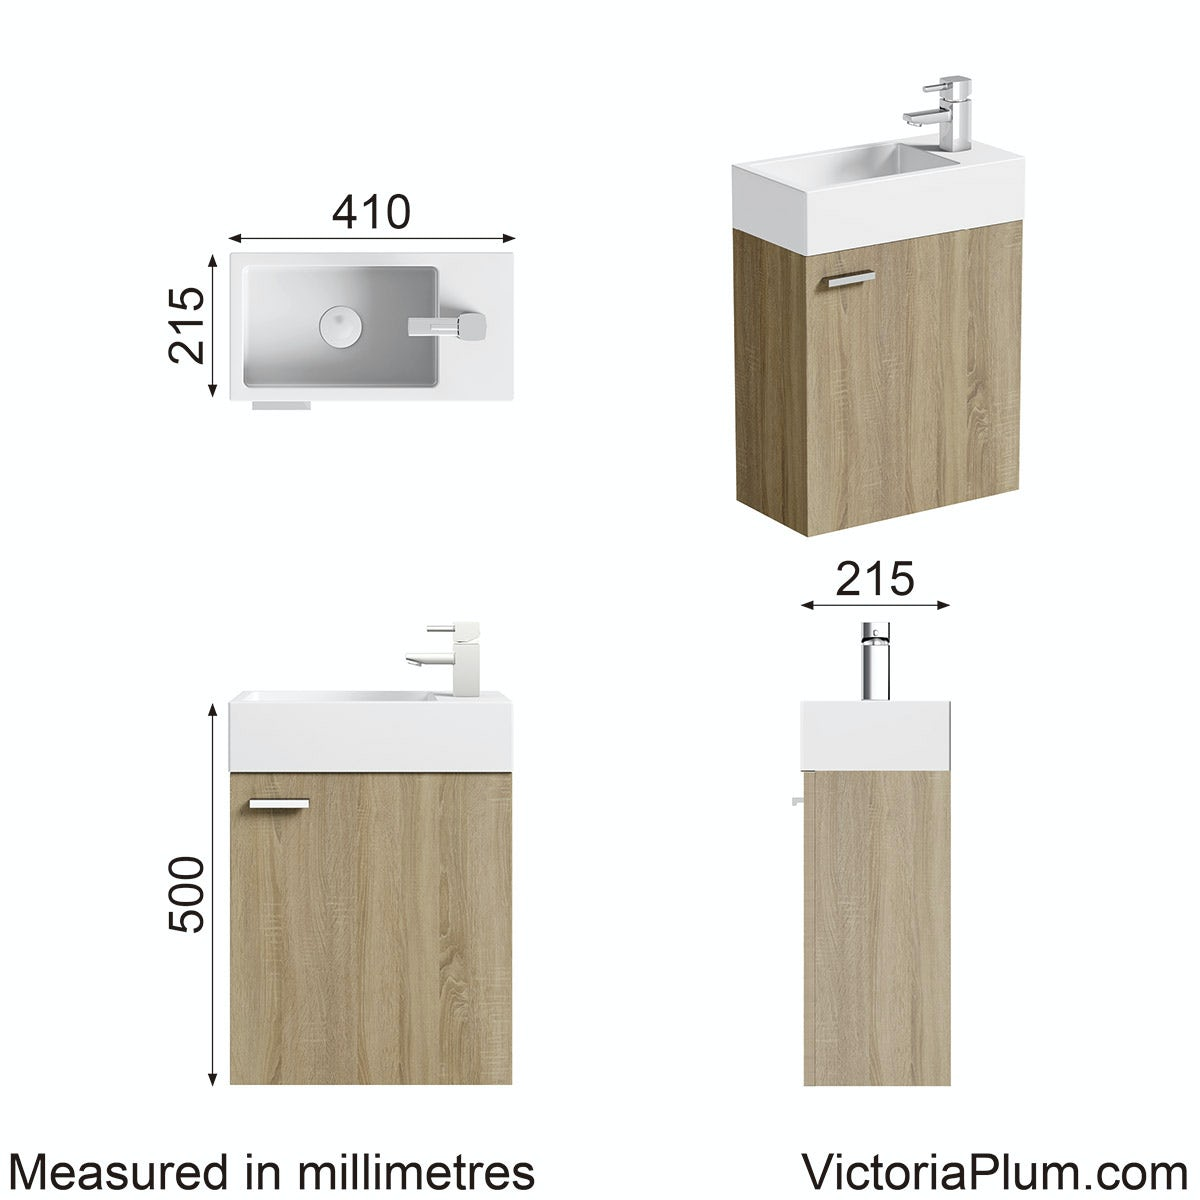 Dimensions for Clarity Compact oak wall hung cloakroom unit with basin 410mm